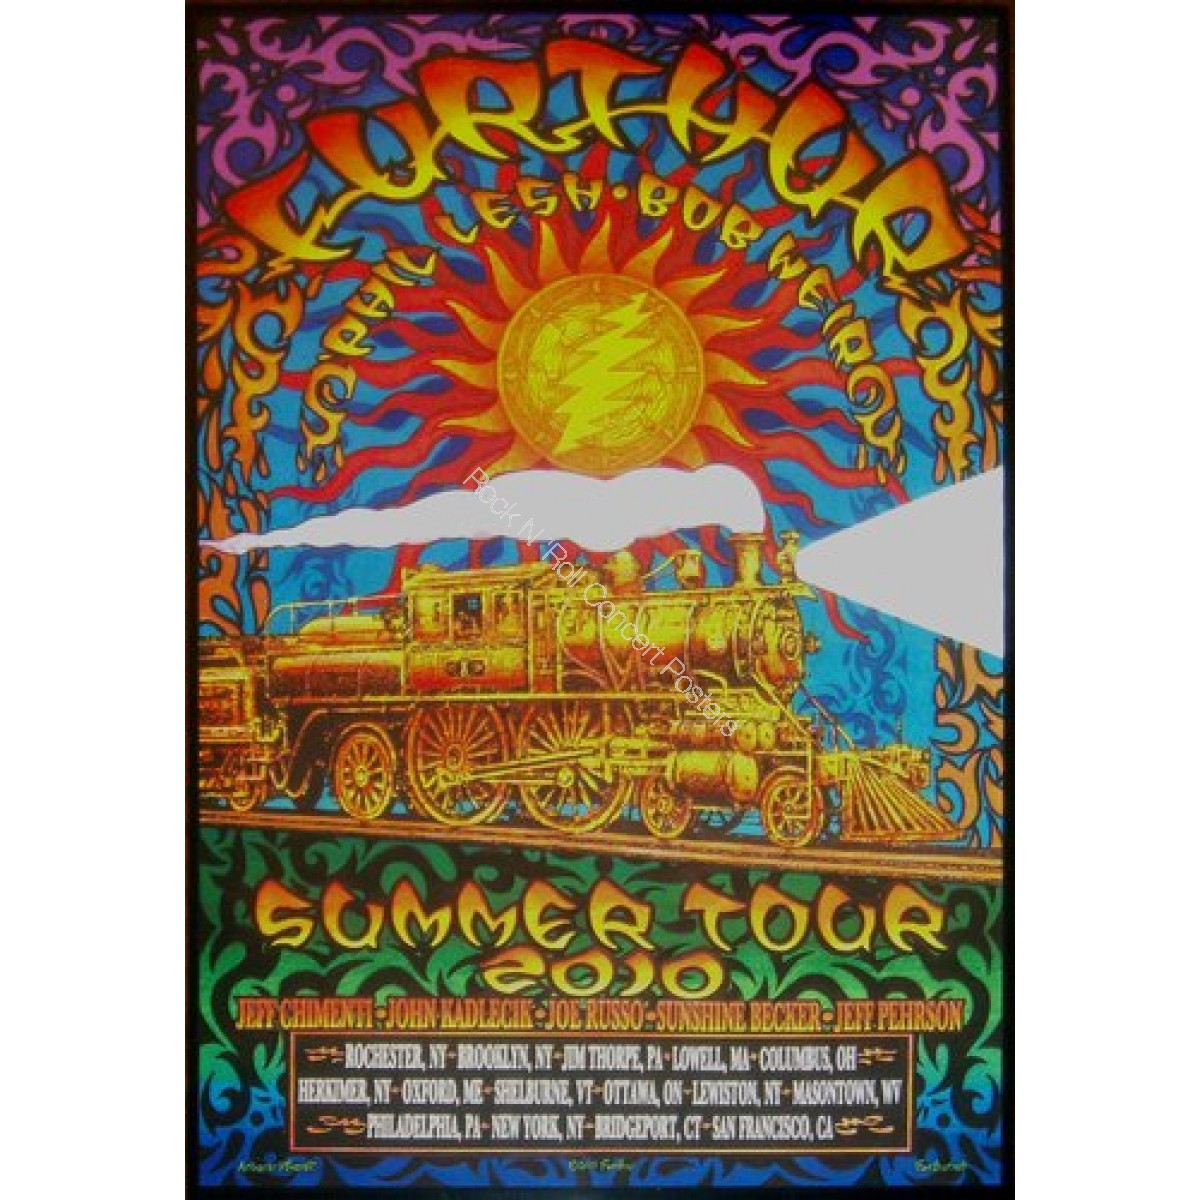 Furthur Summer Tour 2010 by Michael Everett